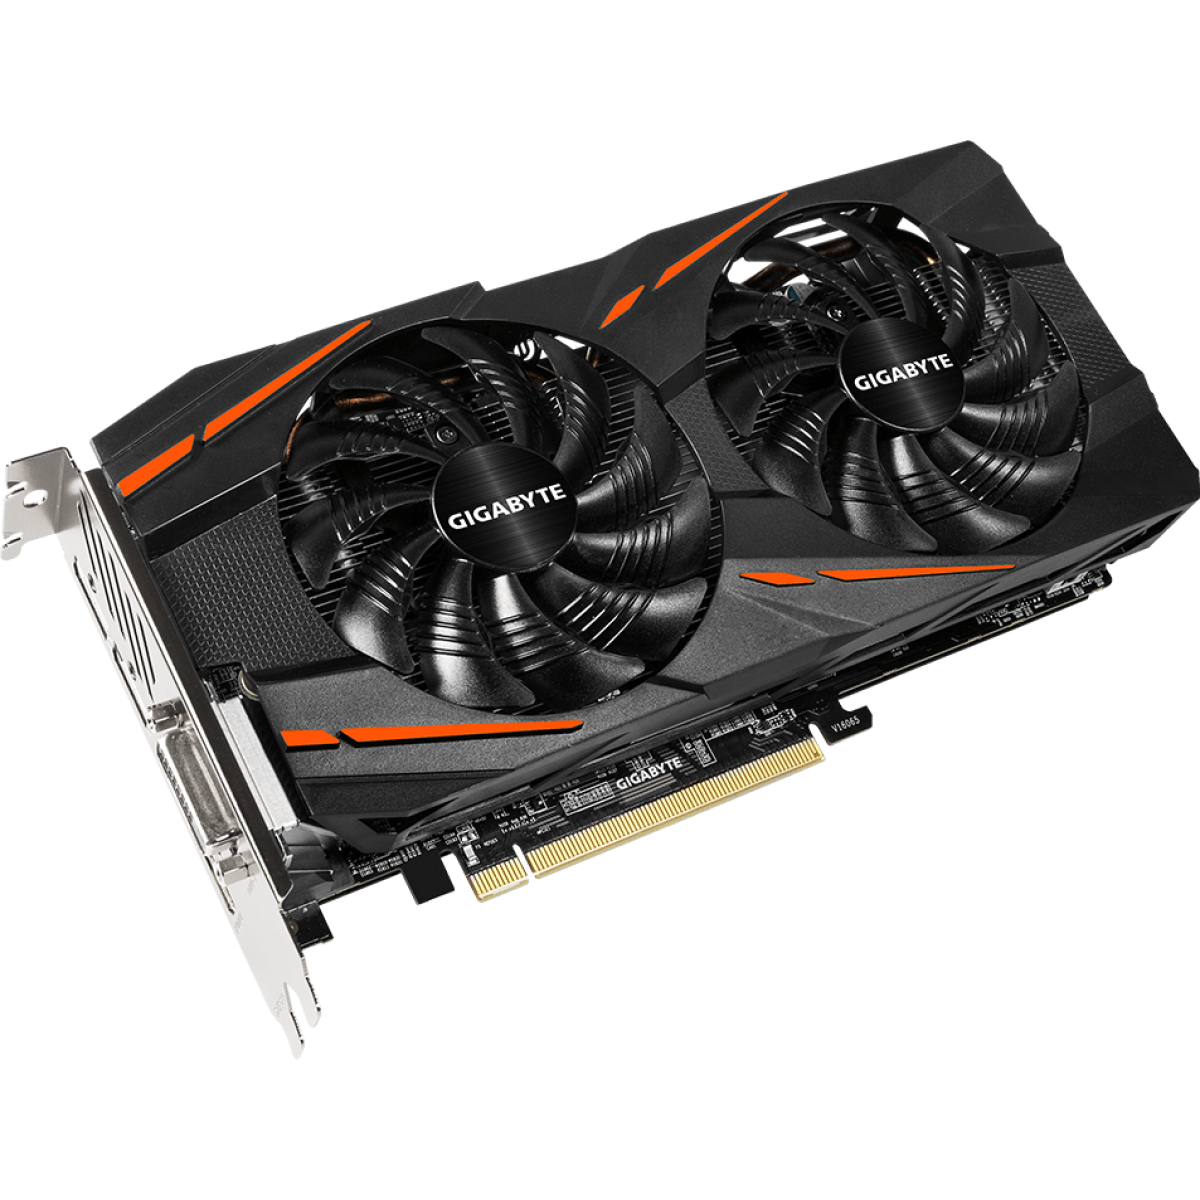 Placa de Vídeo Gigabyte Radeon RX 580 Gaming Dual, 8GB GDDR5, 256Bit, GV-RX580GAMING-8GD